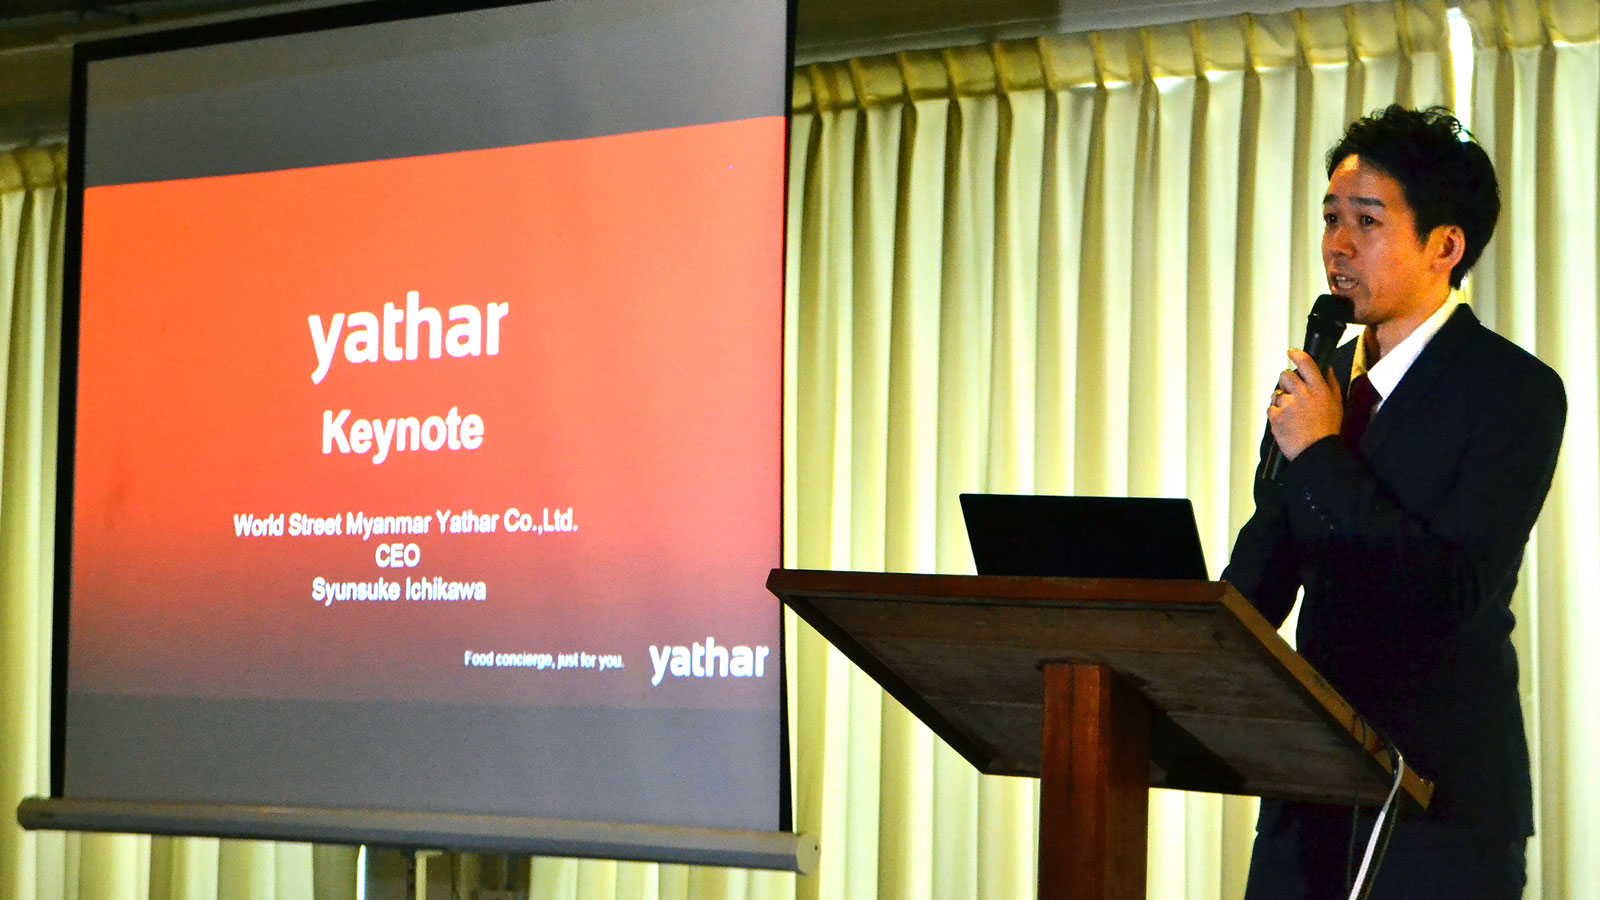 Opening of new yathar office in Mandalay